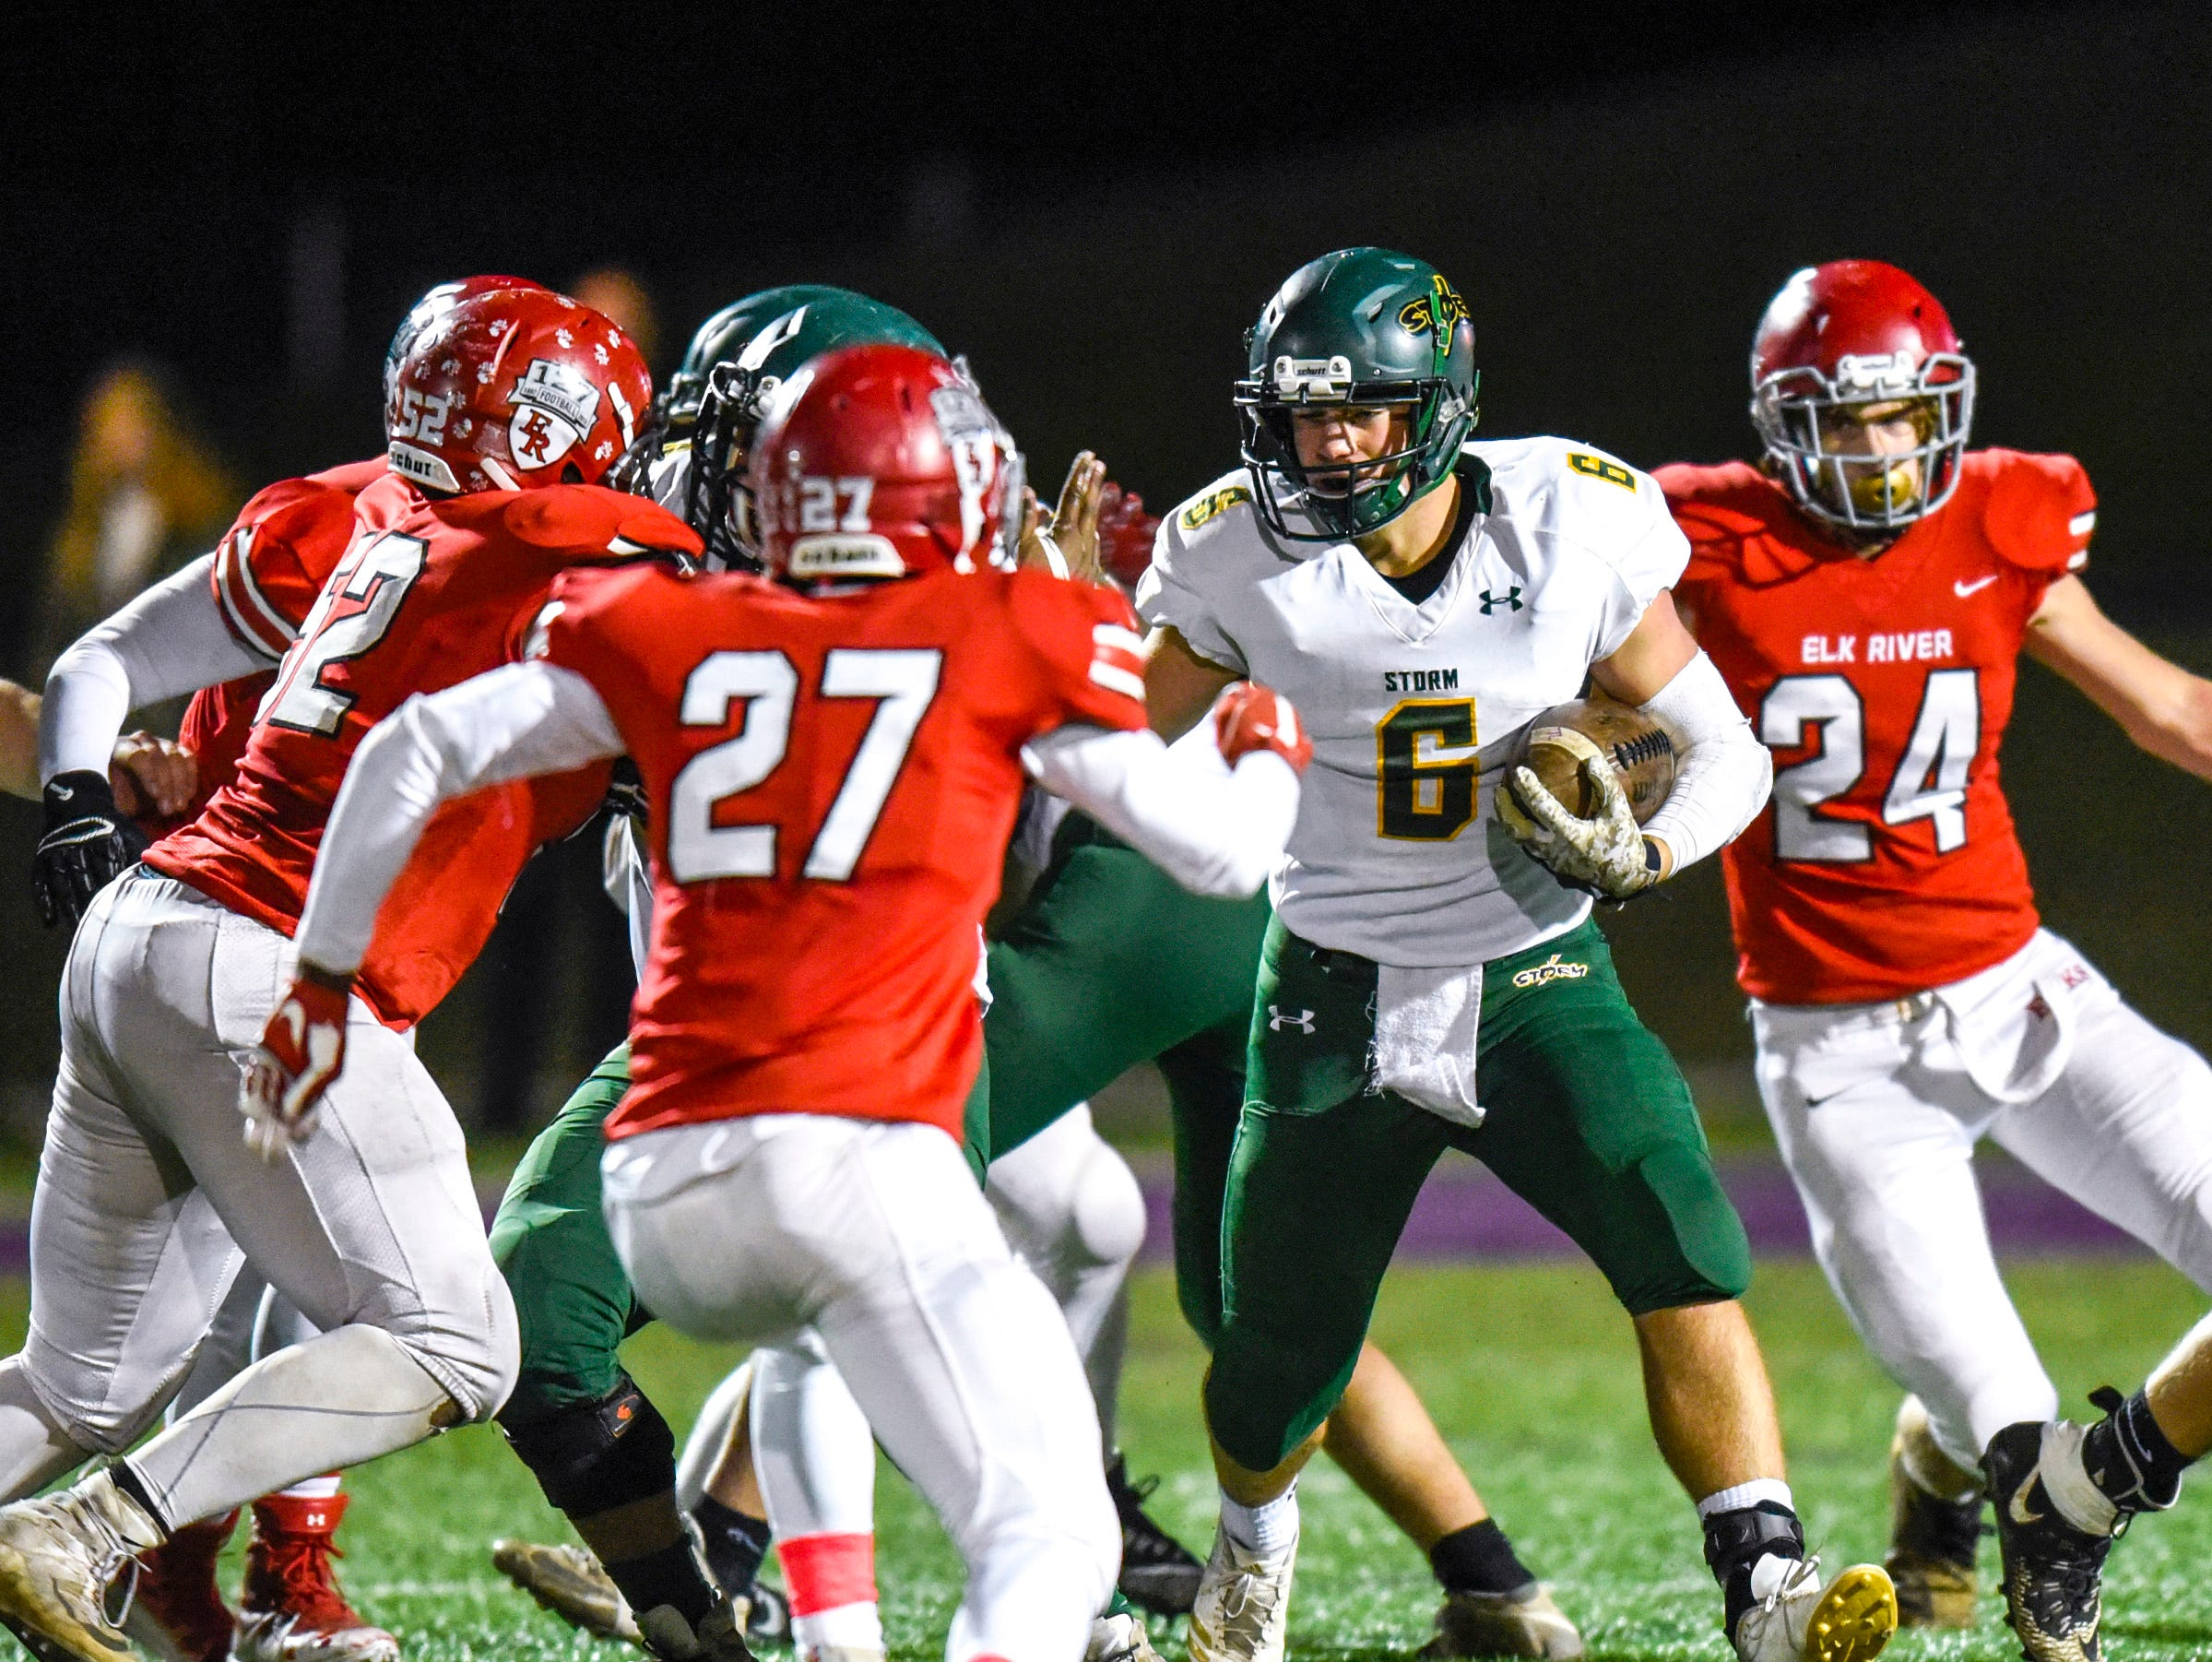 Sauk Rapids' J.D. Bates looks for a way through the Elk River defense during the first half Friday, Nov. 2, in the Section 6-5A championship at Buffalo High School.